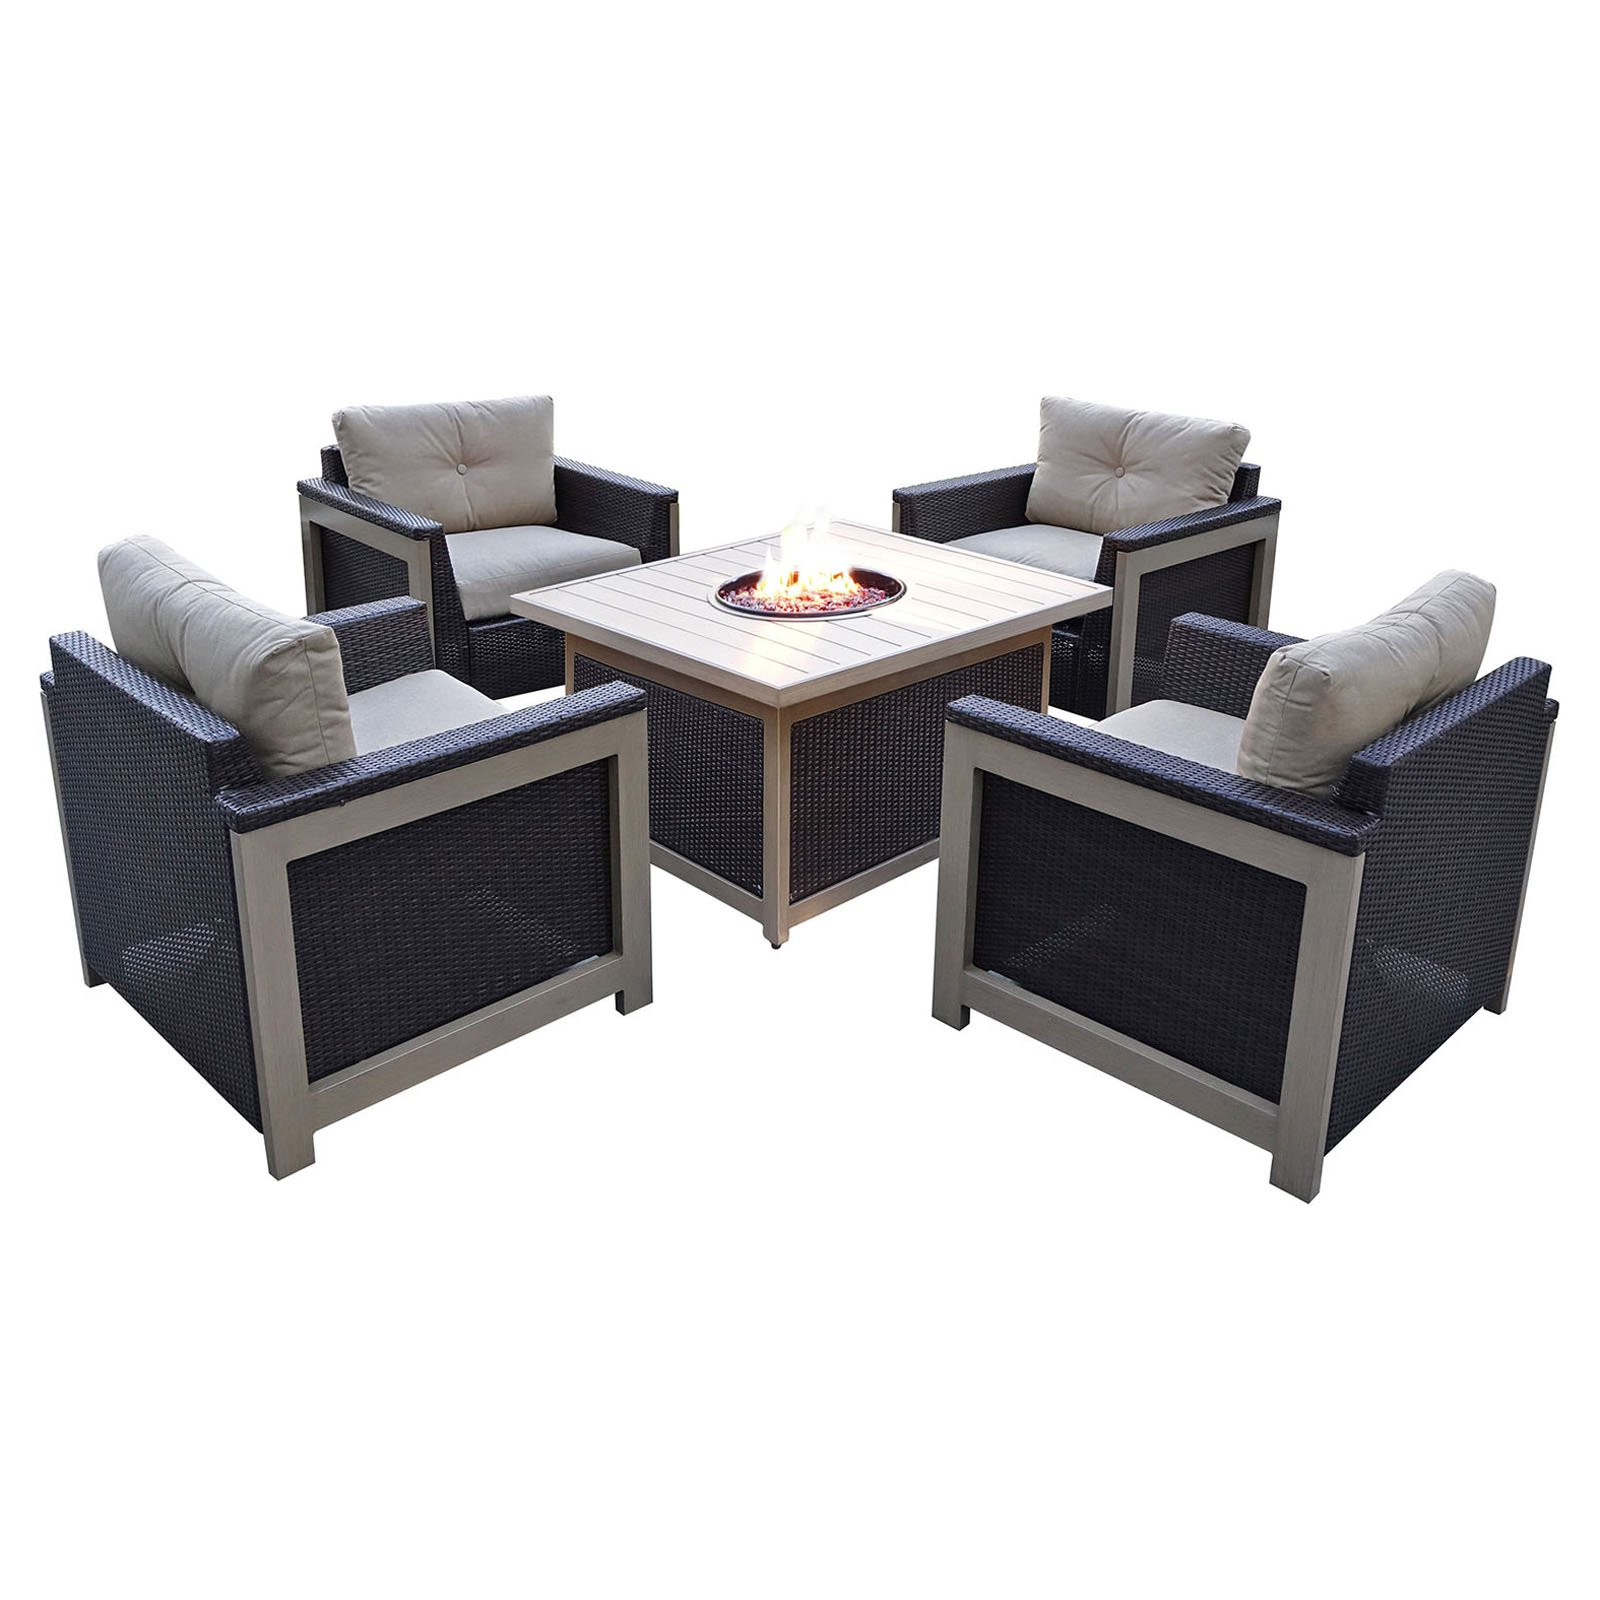 Hanover Outdoor Montana 5-Piece Woven Fire Pit Chat Set with Slate Top